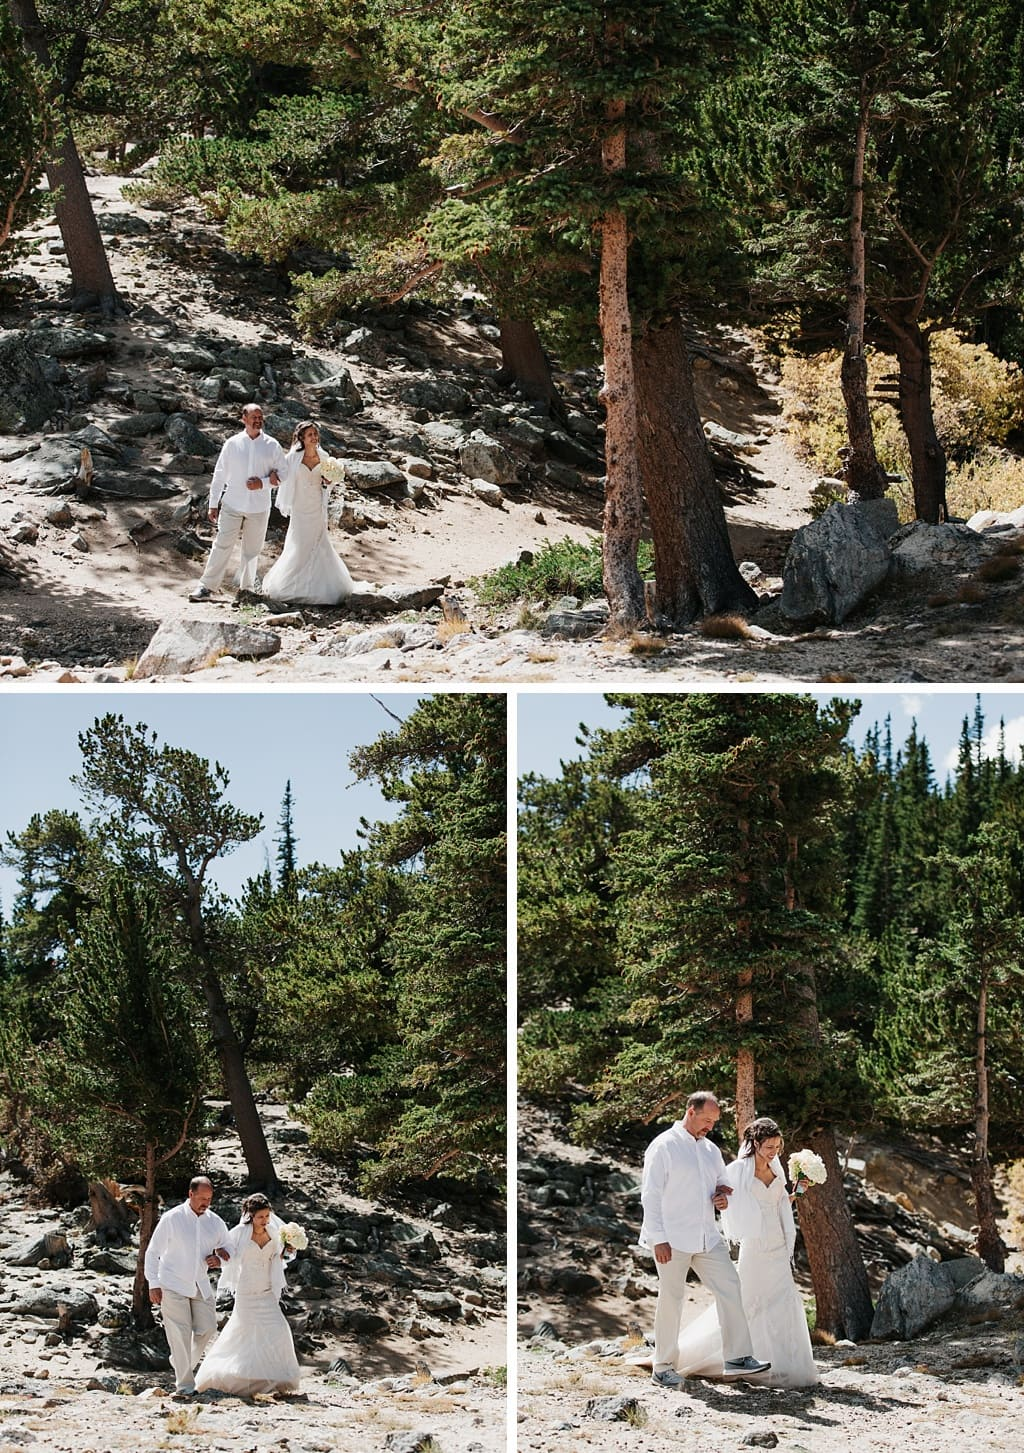 Bride and her father walking up to the ceremony site at a St. Mary's Glacier elopement wedding in Colorado